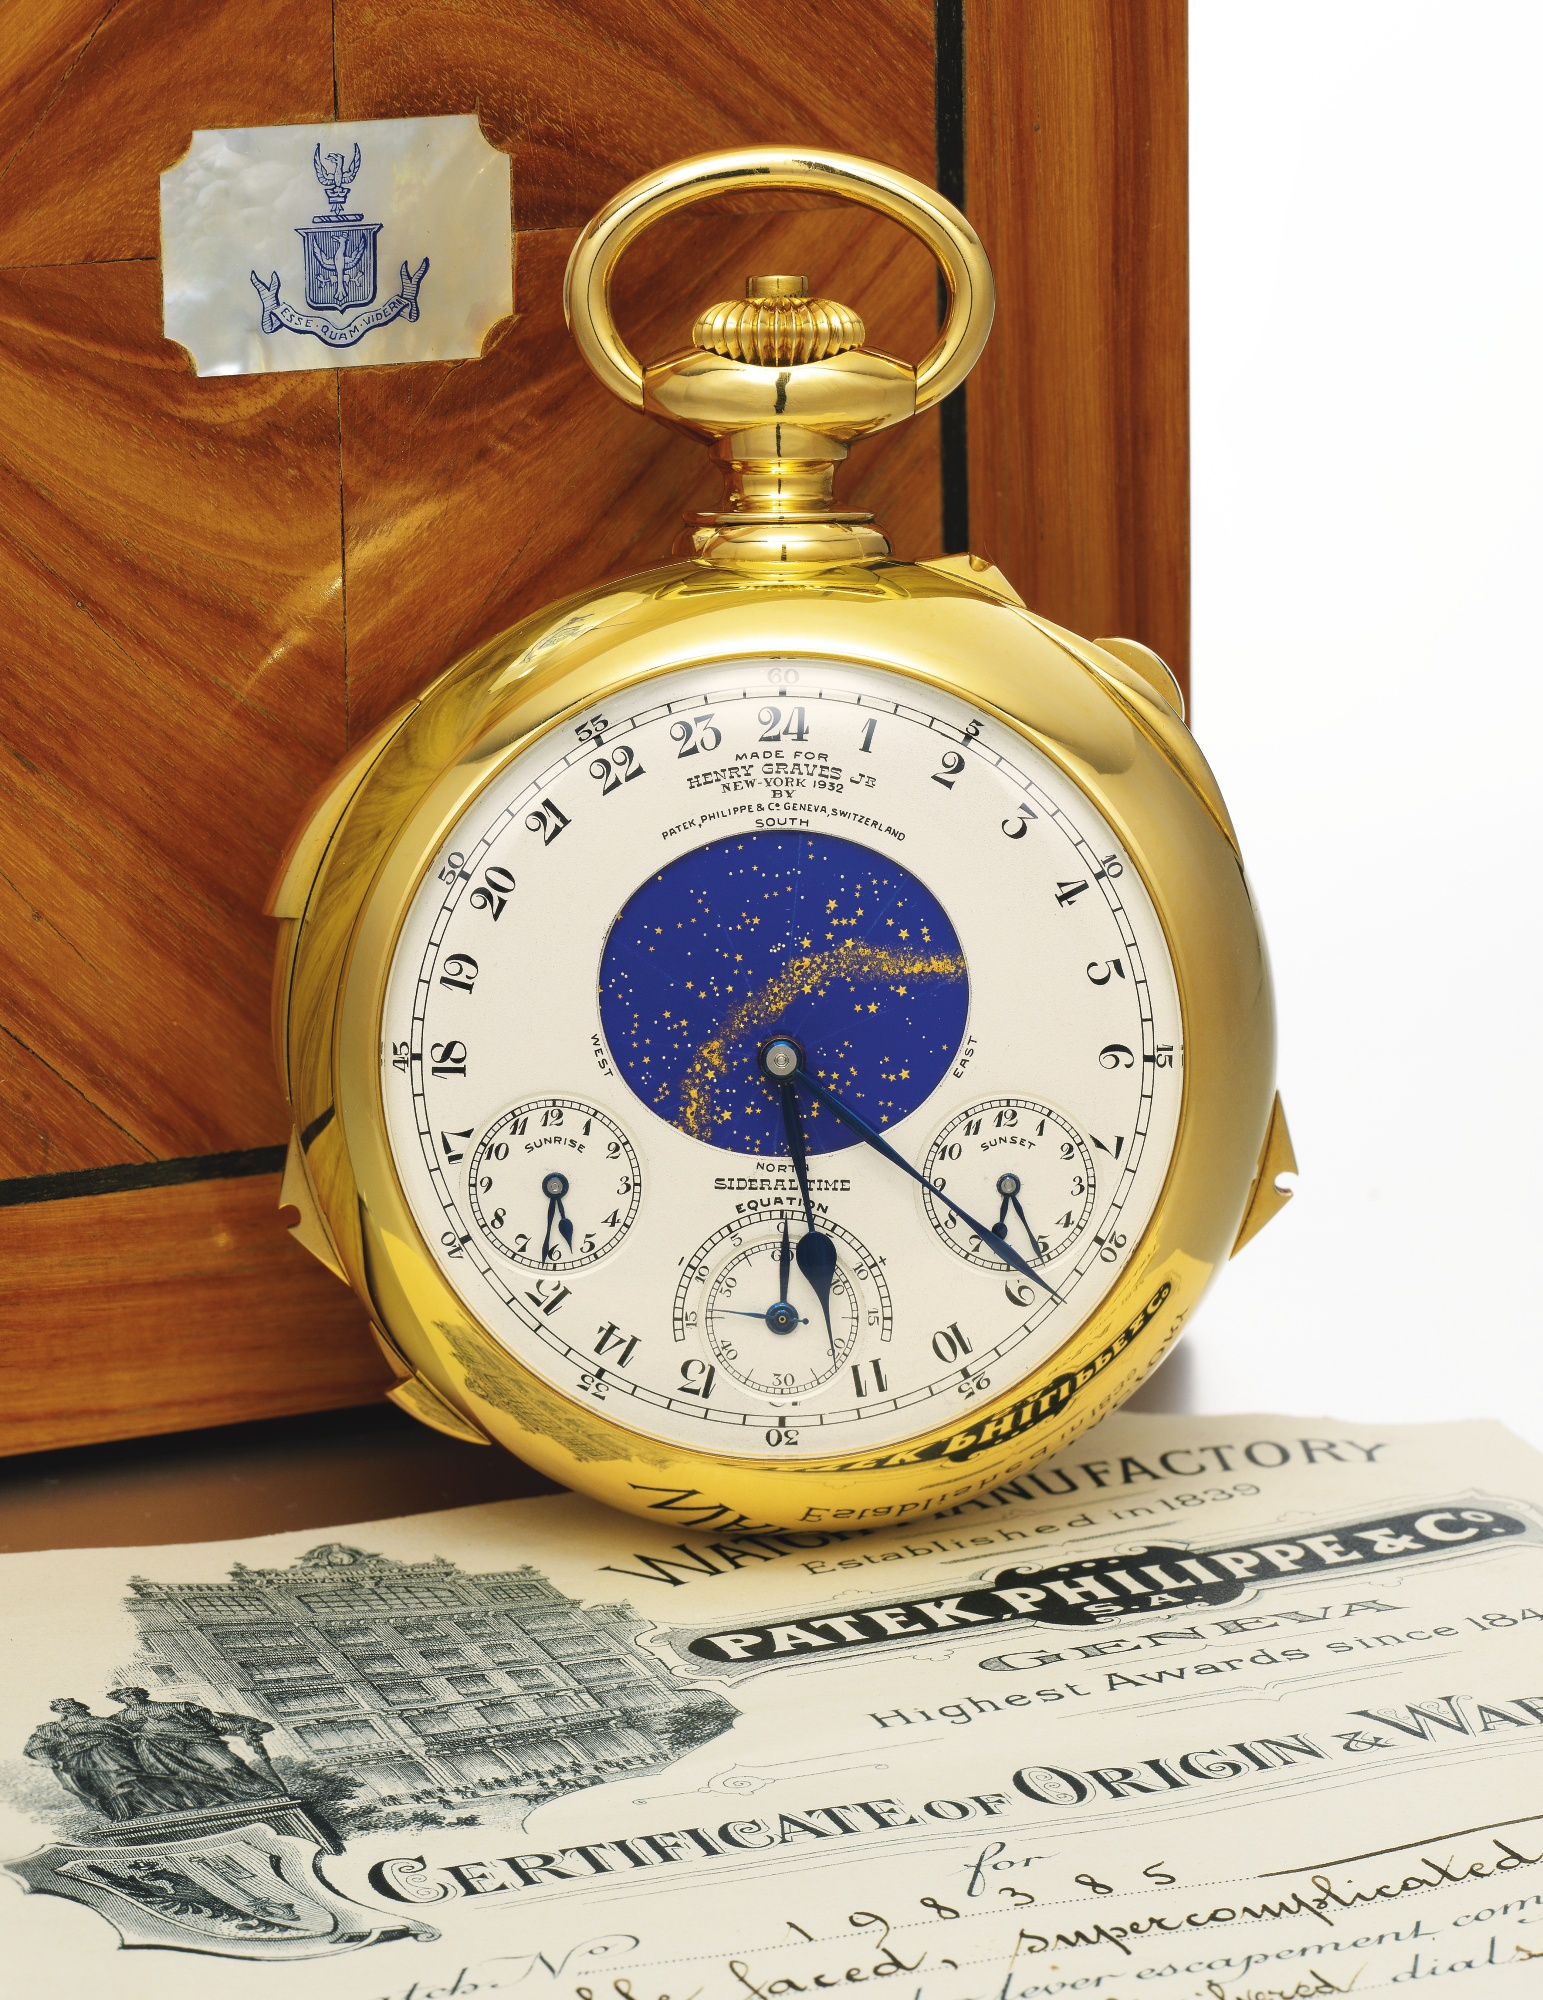 Patek Philippe Henry Graves Jr. Supercomplication Patek Philippe   Co. 87eae65280